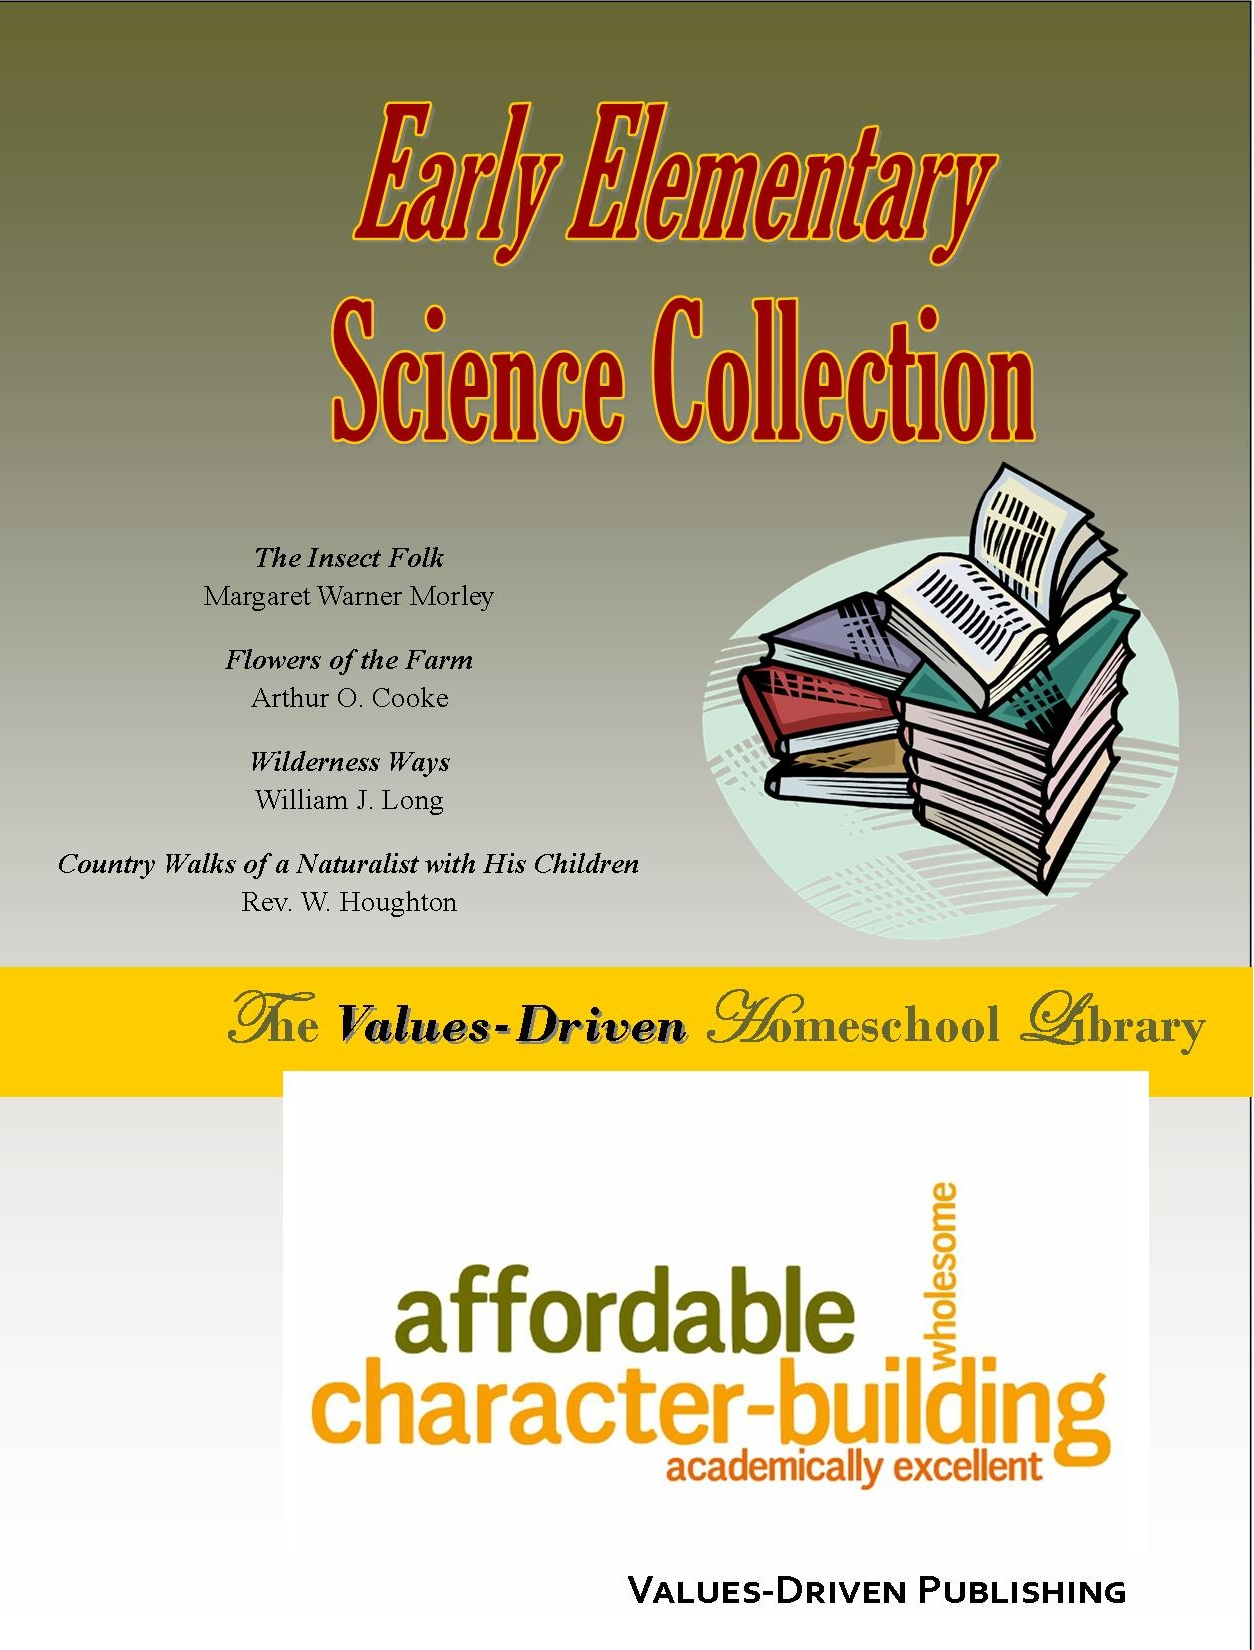 Early Elementary Science Collection